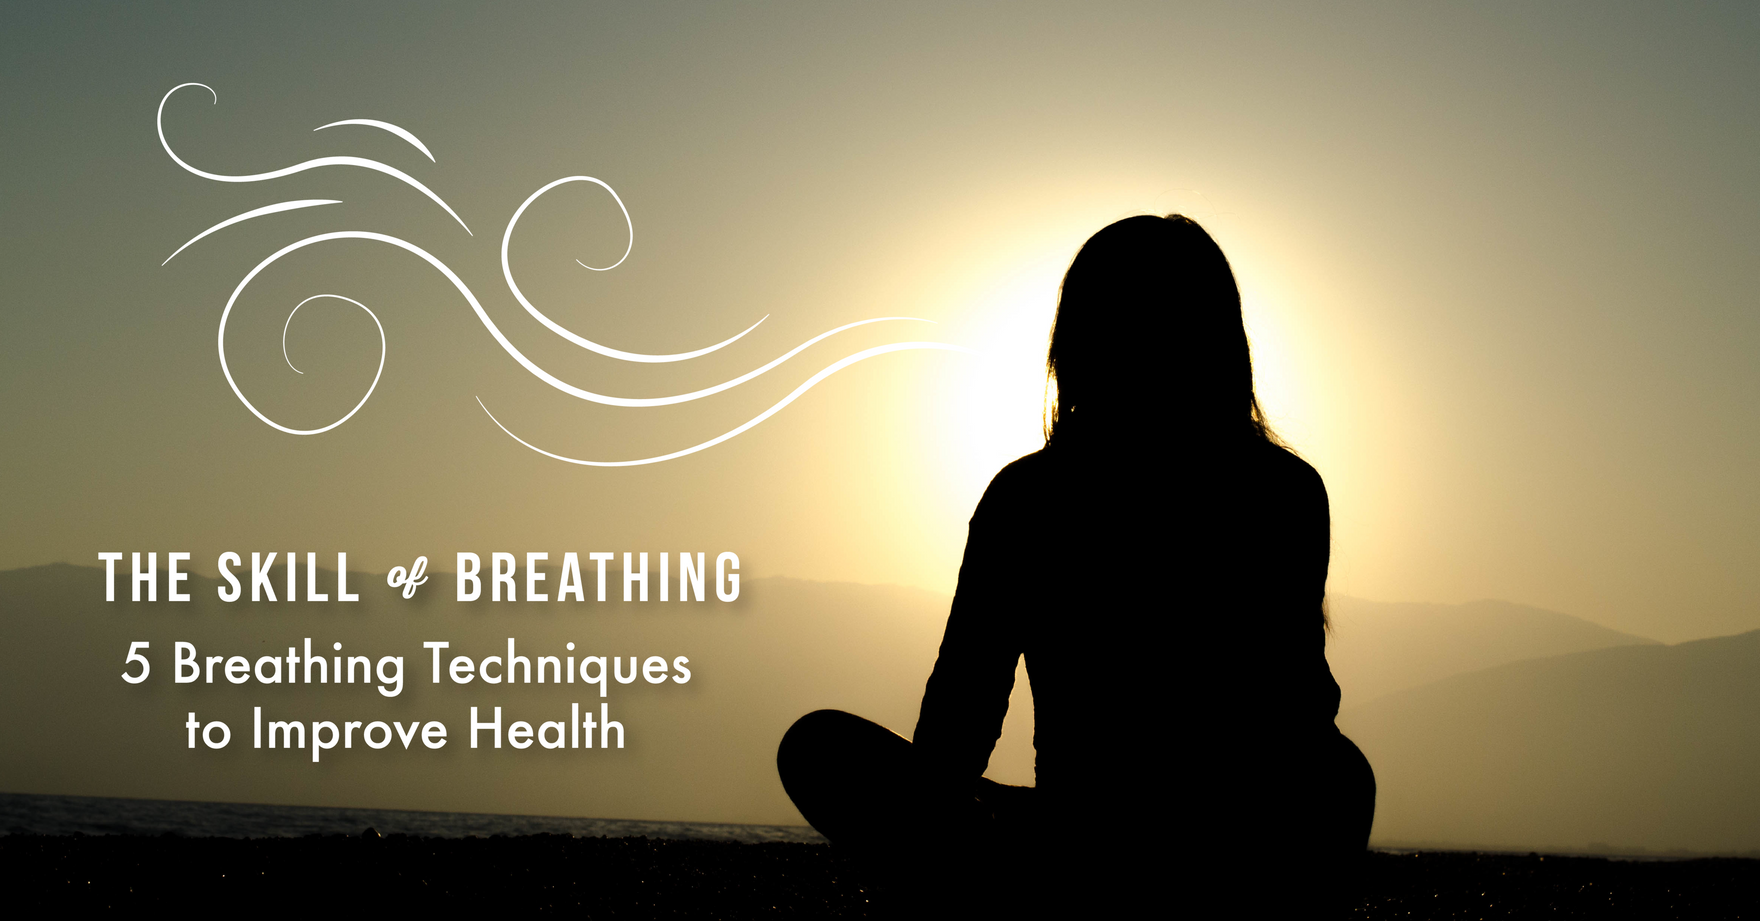 5 Breathing Techniques to Improve Health